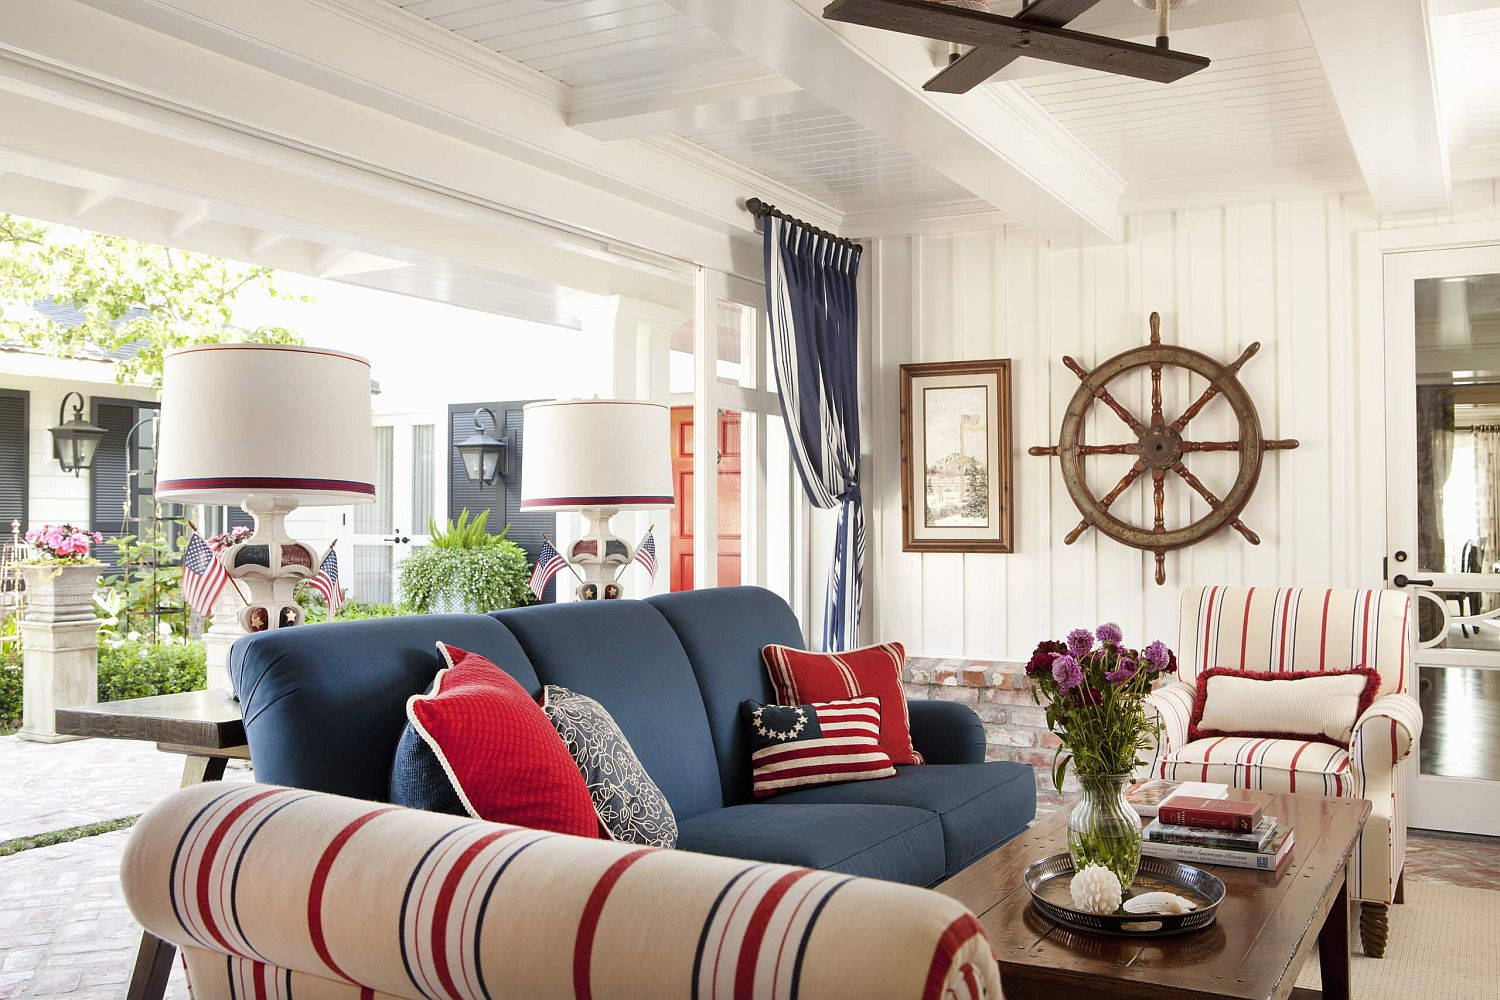 Beautiful-beach-style-porch-of-San-Deigo-home-with-bright-blue-couch-and-striped-chairs-in-cream-blue-and-red-31419